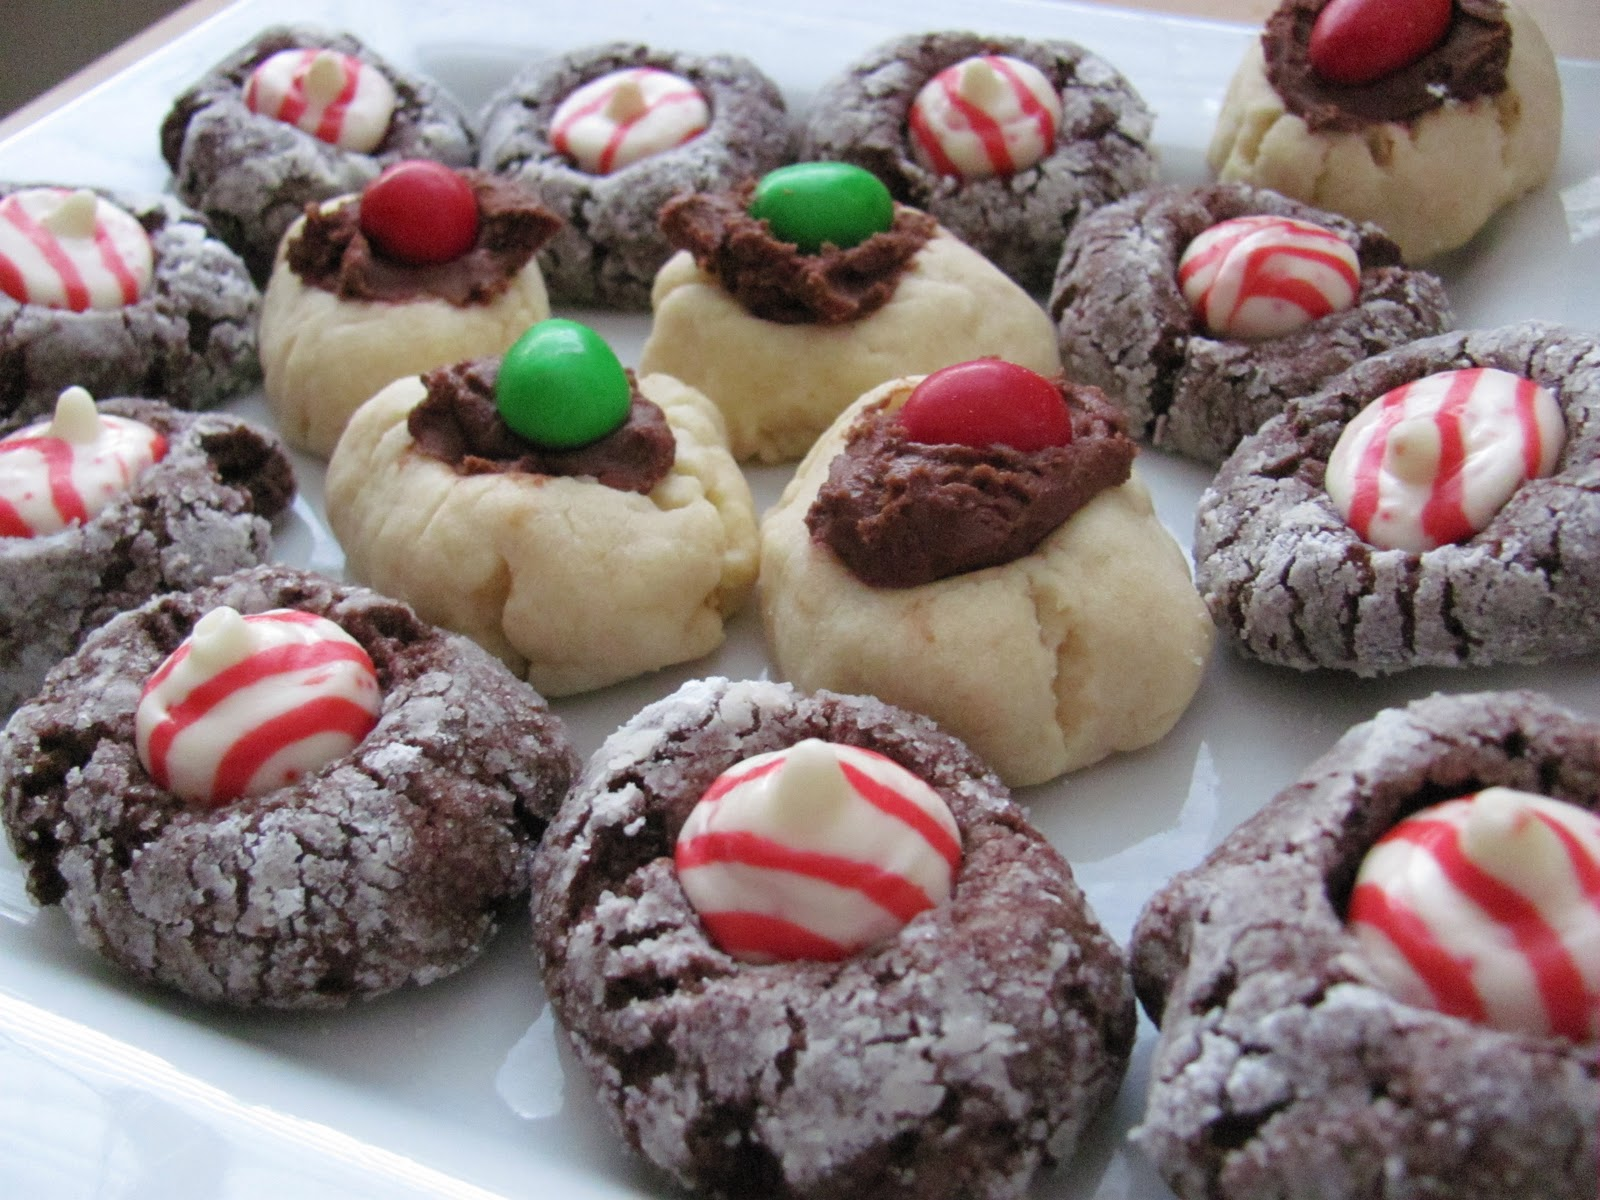 Christmas Cookies Images - Wallpaper, High Definition ...